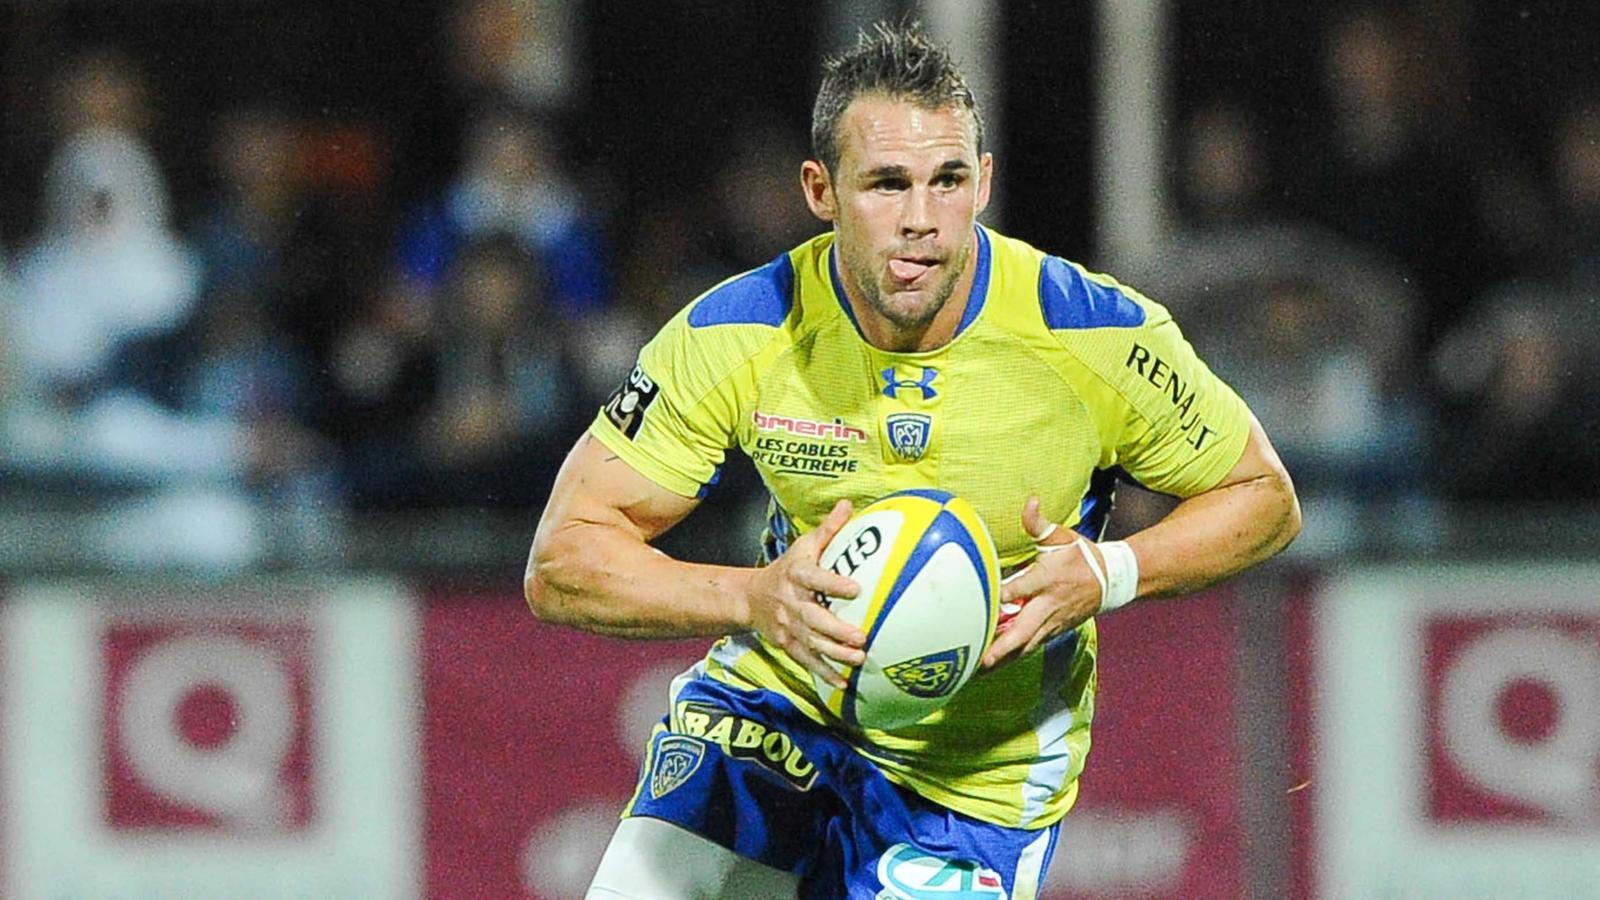 Lee Byrne - Clermont Grenoble - 14 septembre 2013